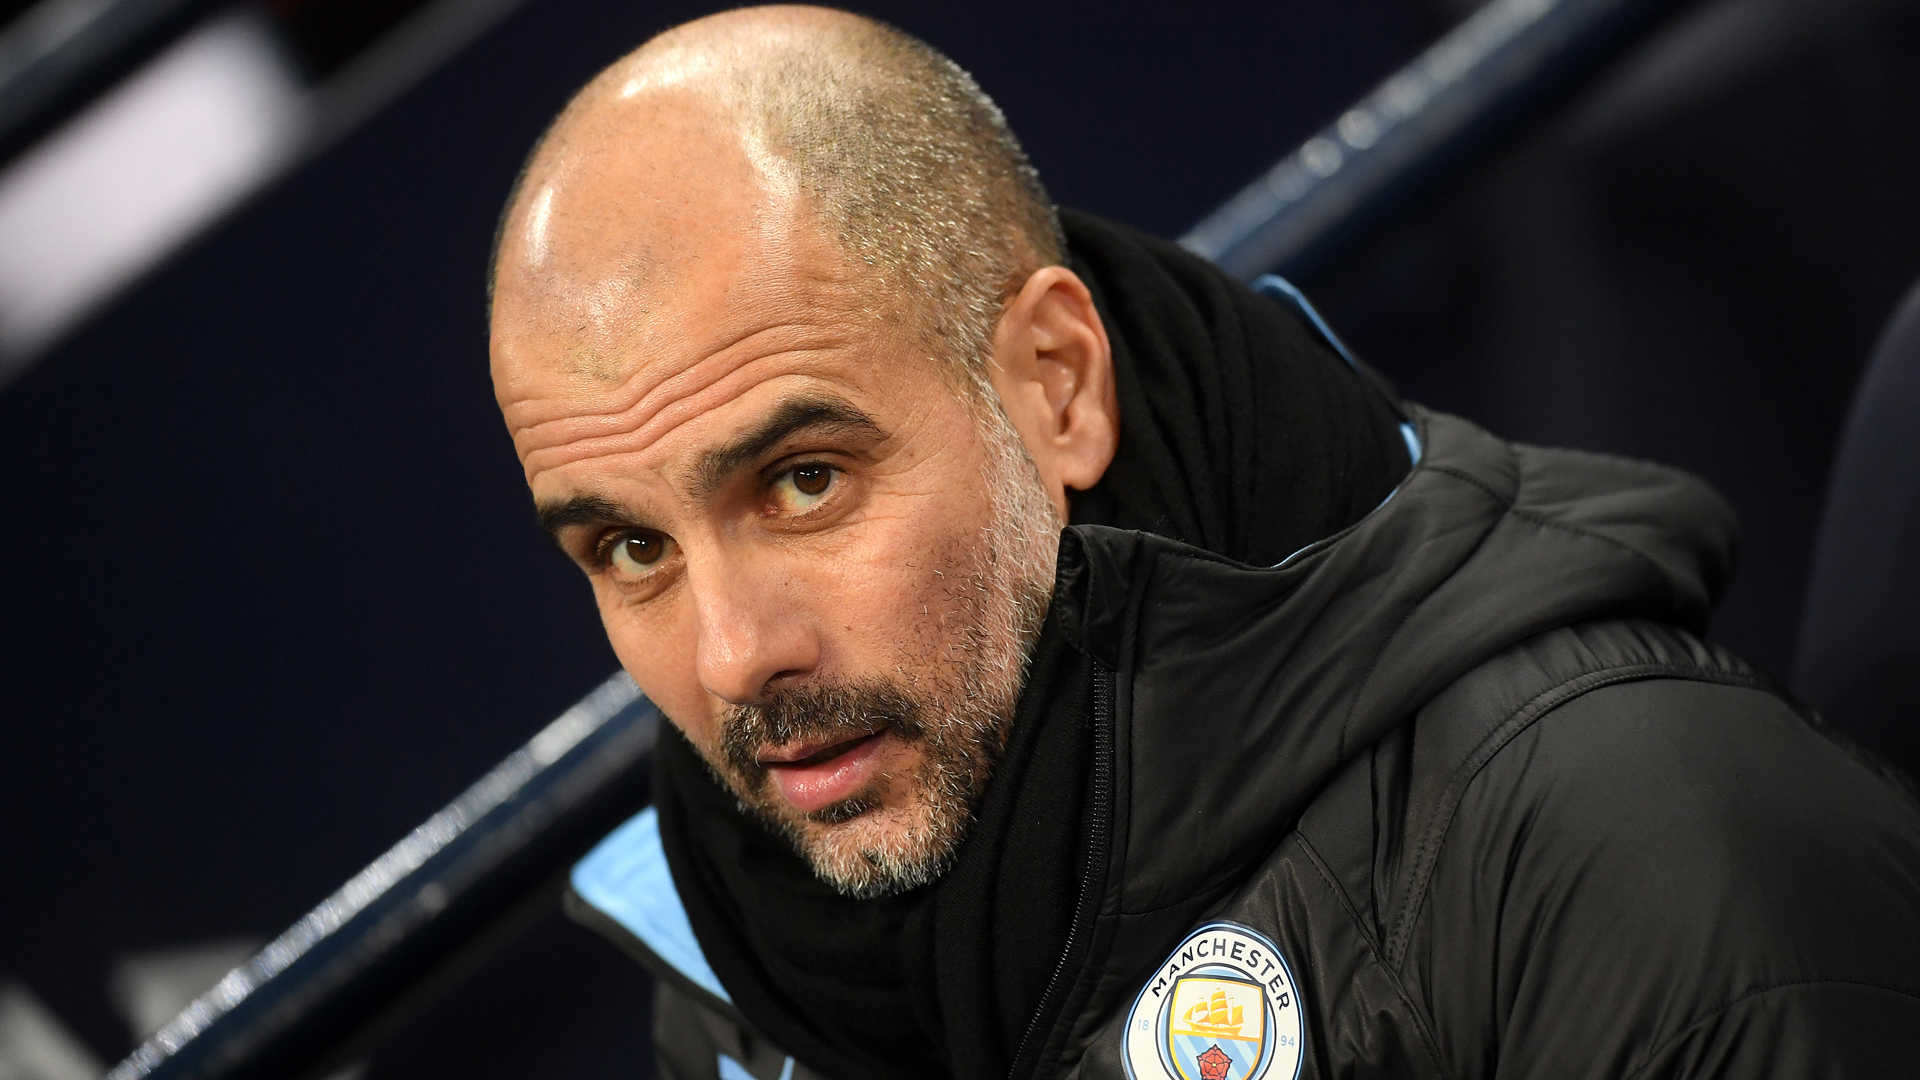 Liverpool are extraordinary but I am only focused on improving Man City - Guardiola